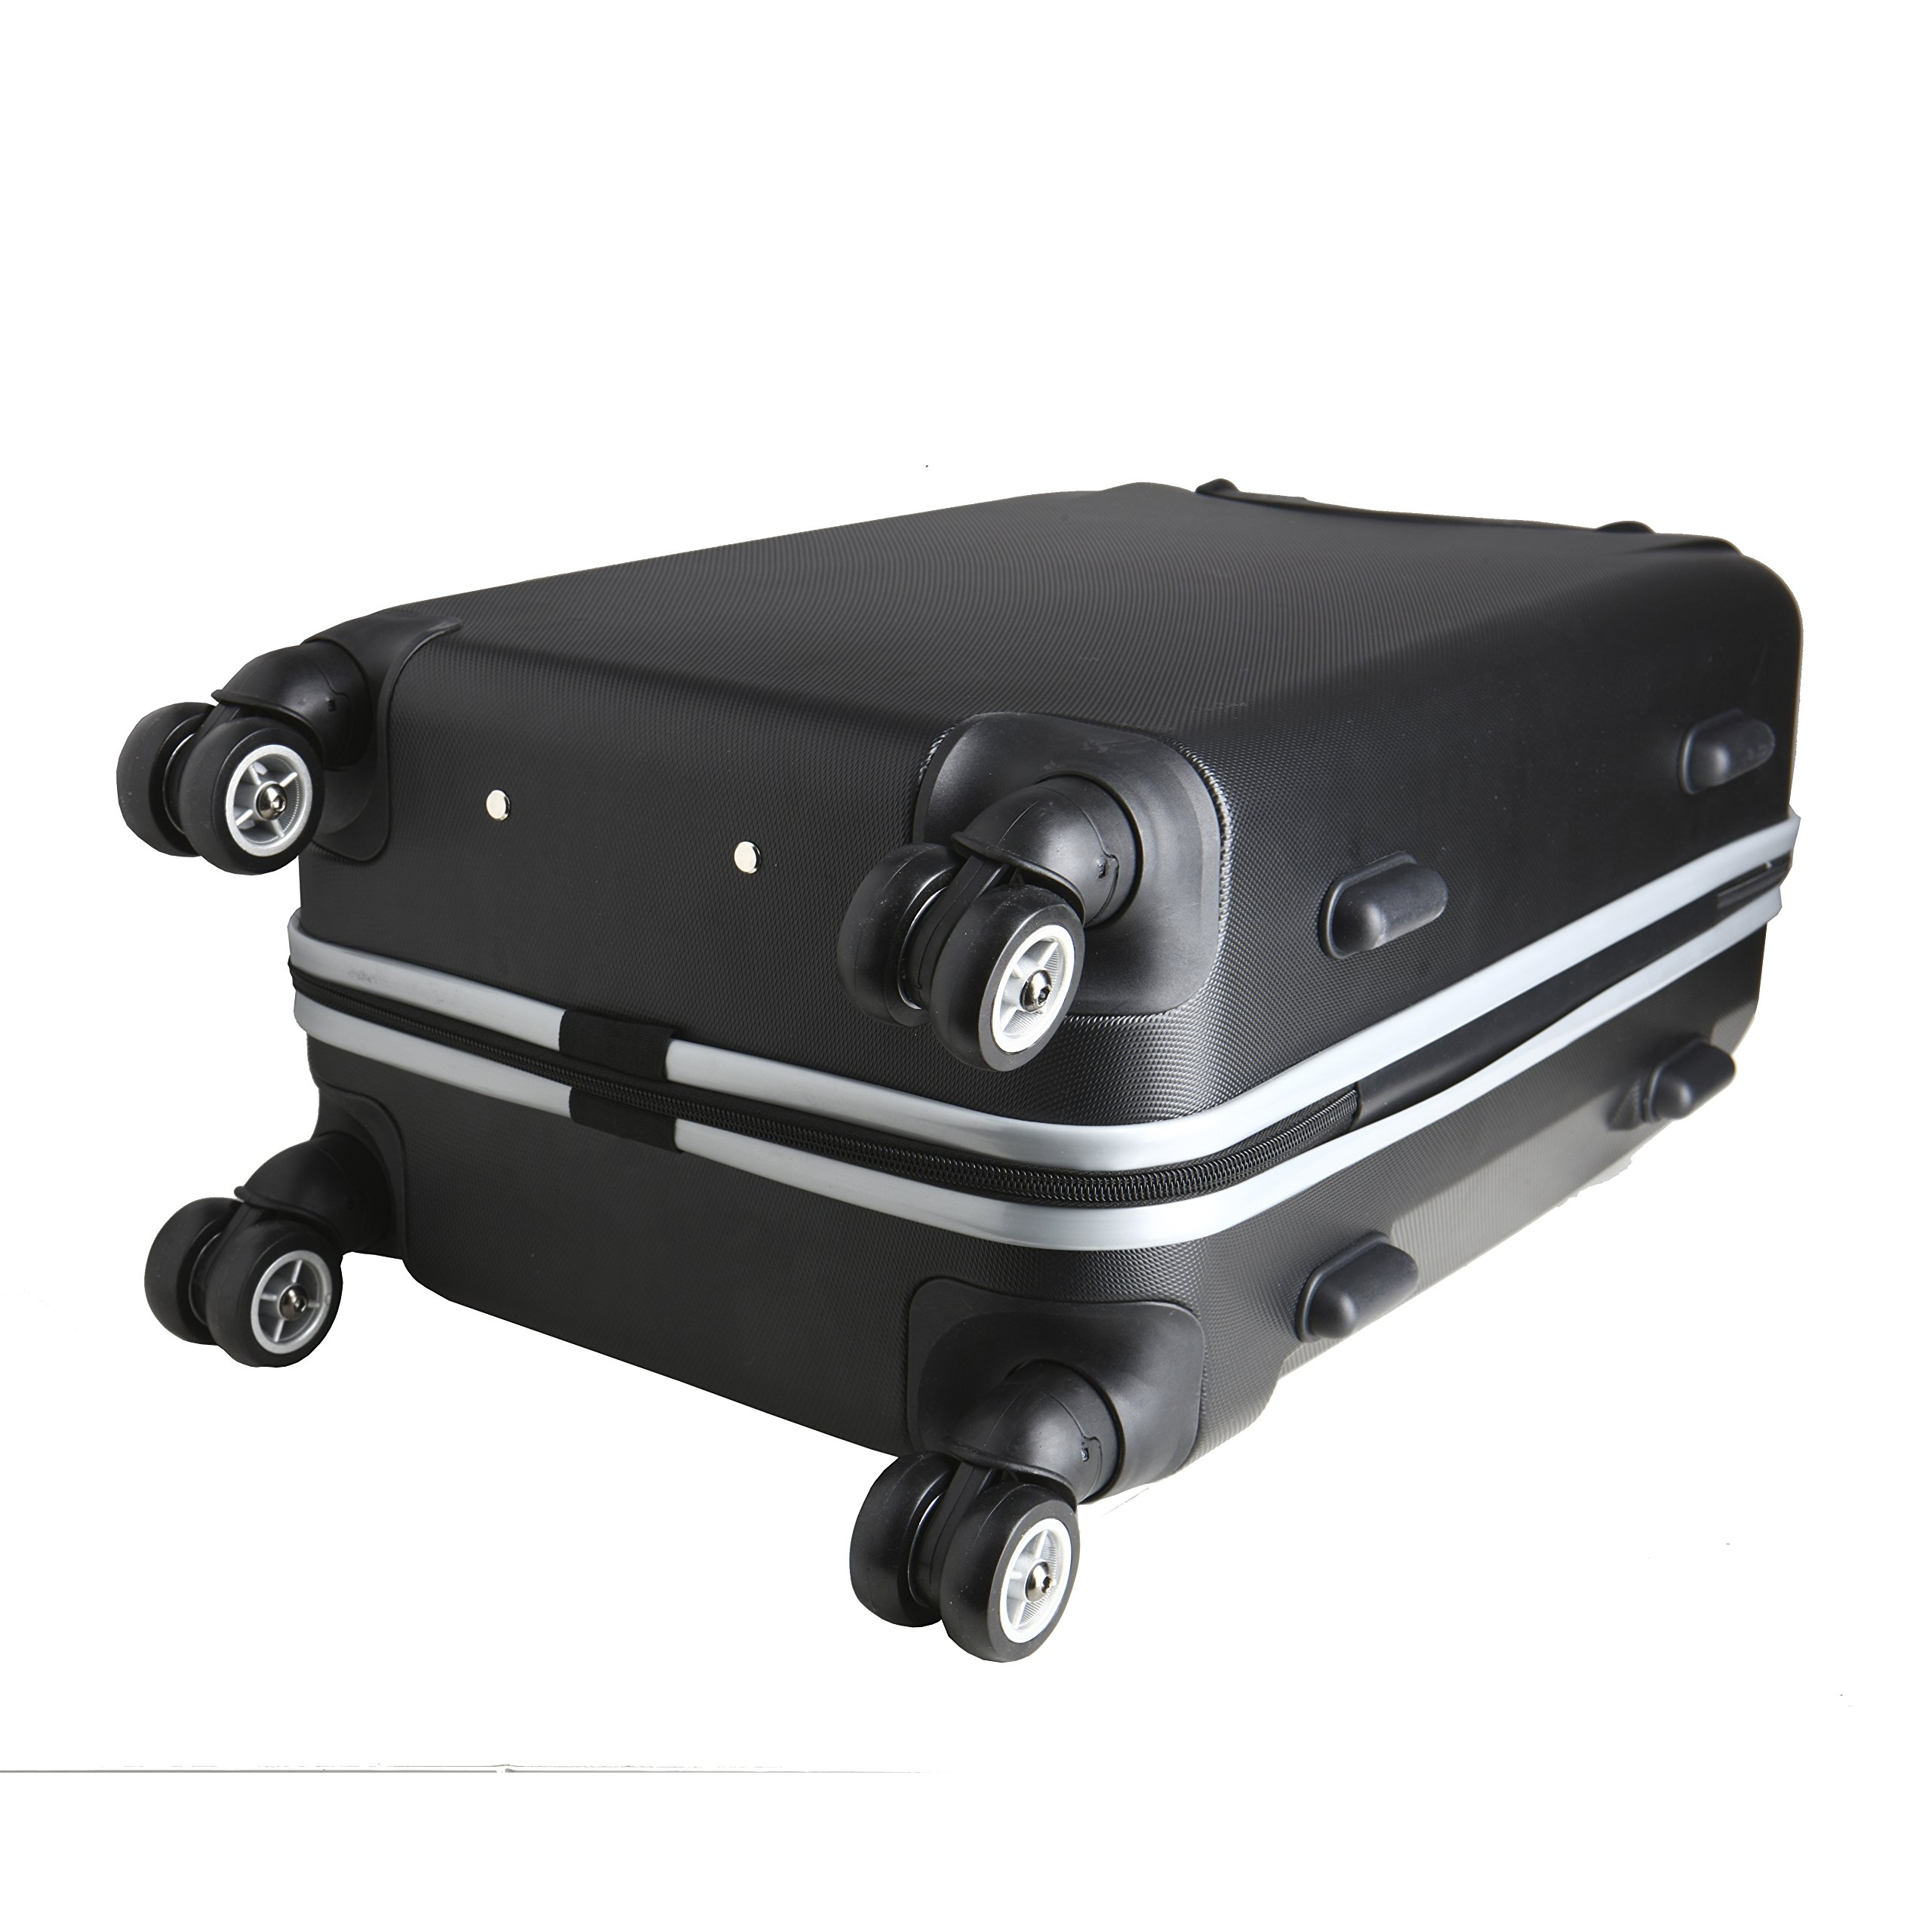 Denco NBA Houston Rockets Carry-On Hardcase Luggage Spinner, Black by Denco (Image #3)